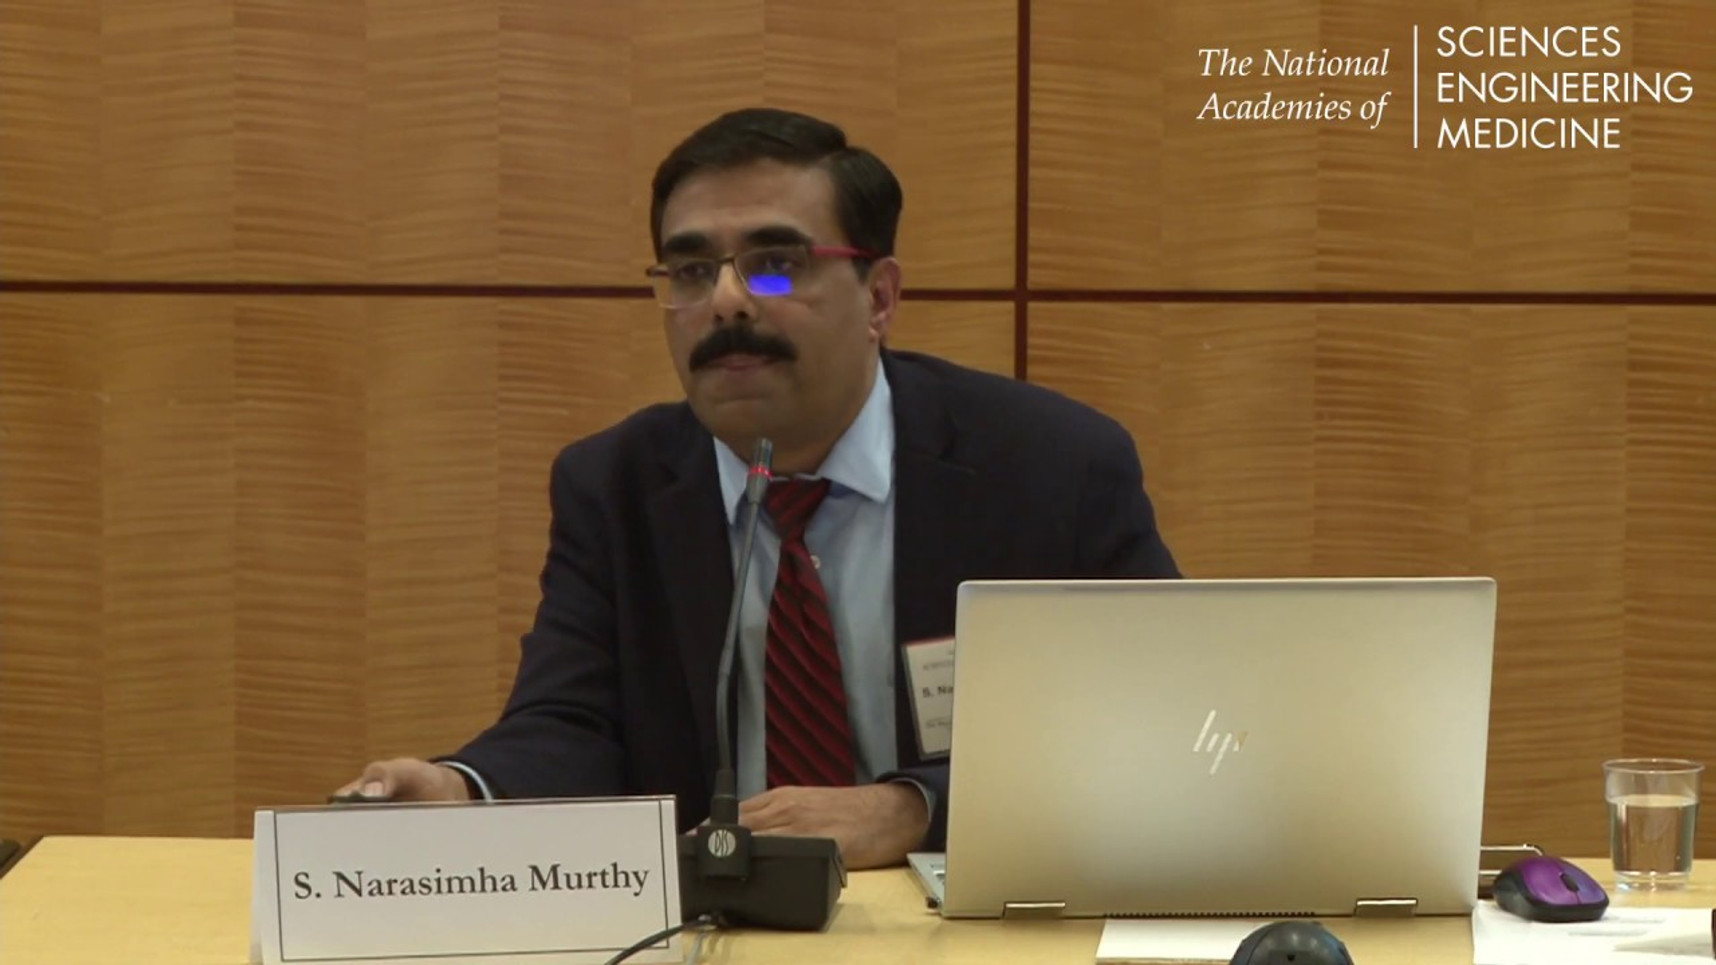 Dr. Narasimha Murthy's at the National Academies of Sciences, Engineering, and Medicine (NASEM), Health and Medicine Division on May 20, 2019.